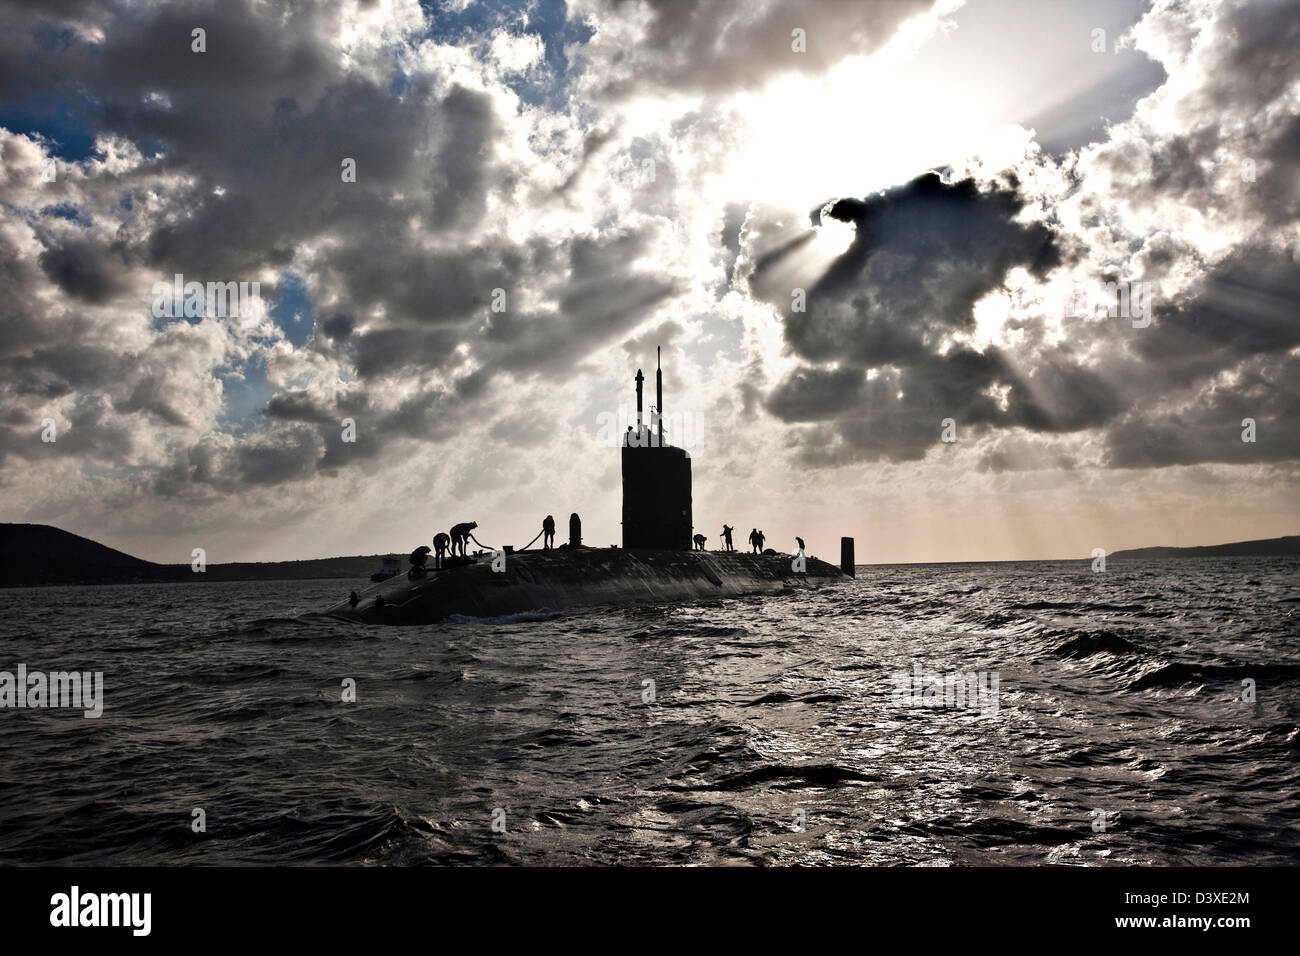 Nuclear Submarine HMS Talent and crew, backlit in Egypt - Stock Image